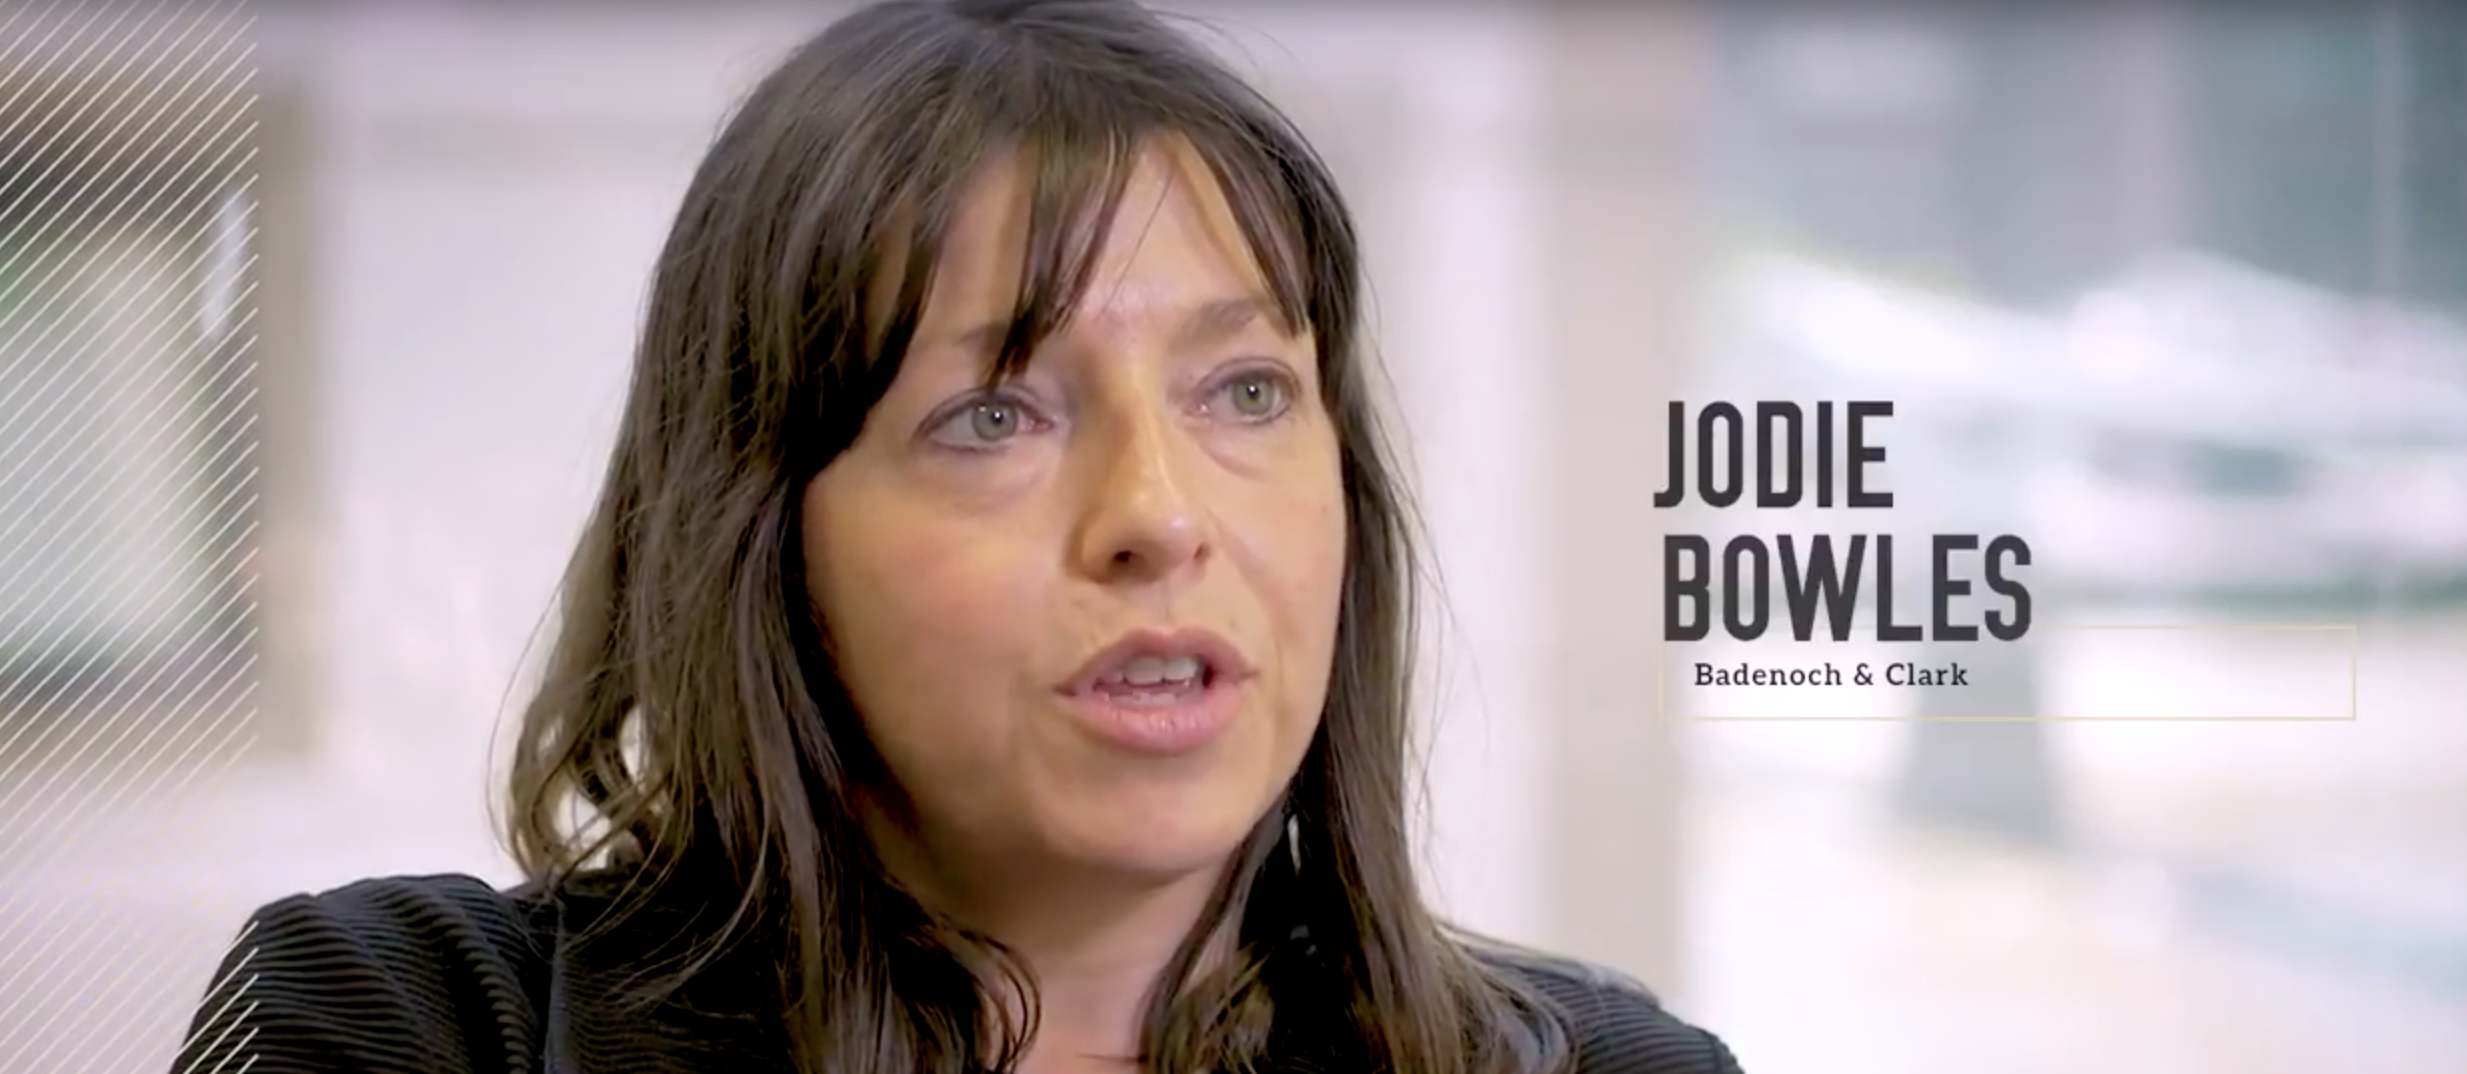 Jodie Bowles from Badenoch and Clark talking about her experience with Enhance the UK